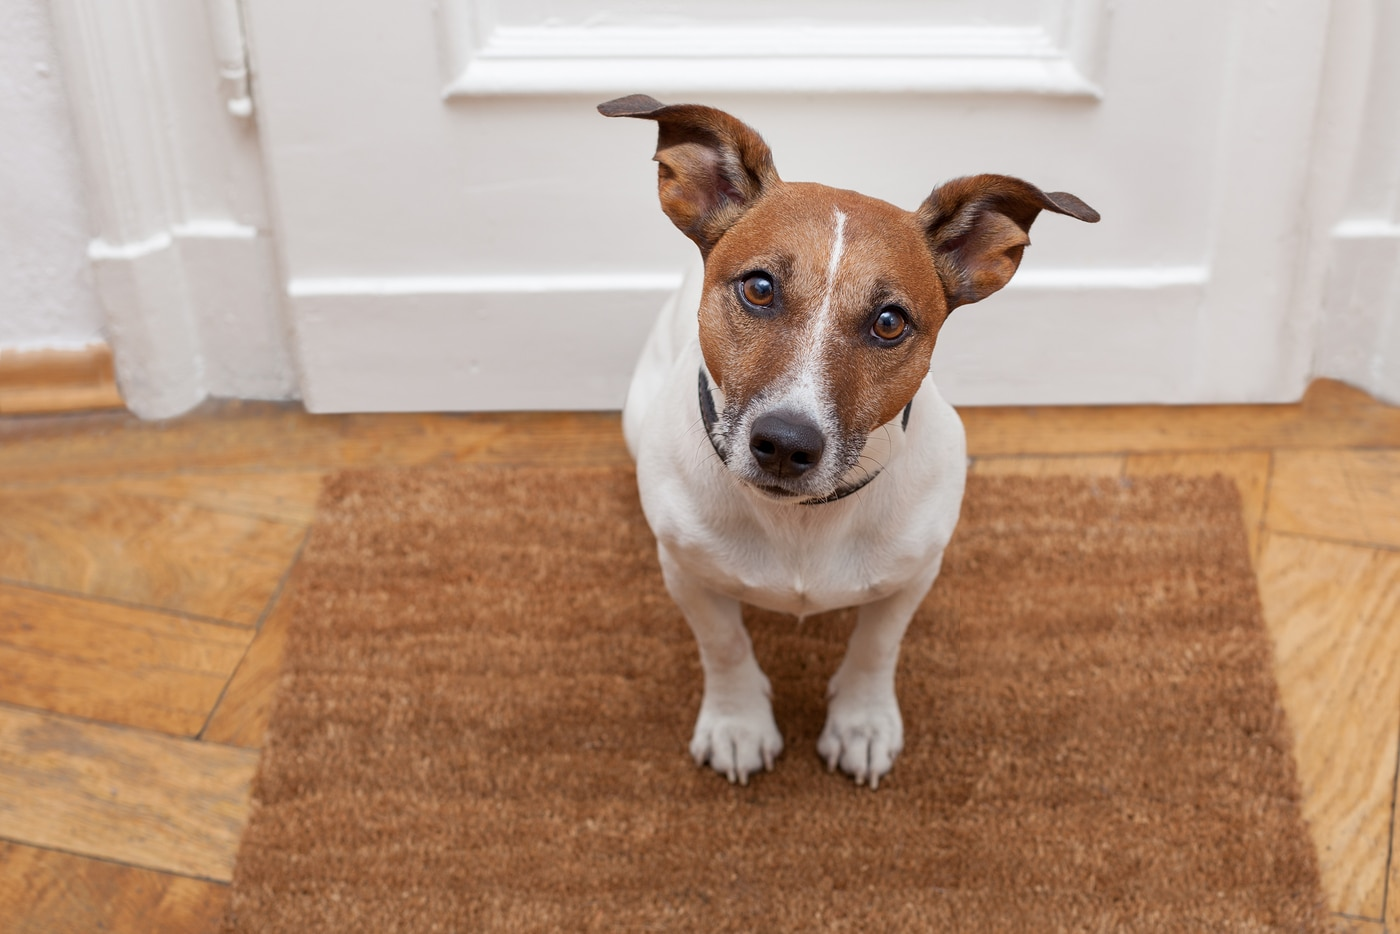 Jack Russell Terrier sitting on welcome mat at the door looking up.